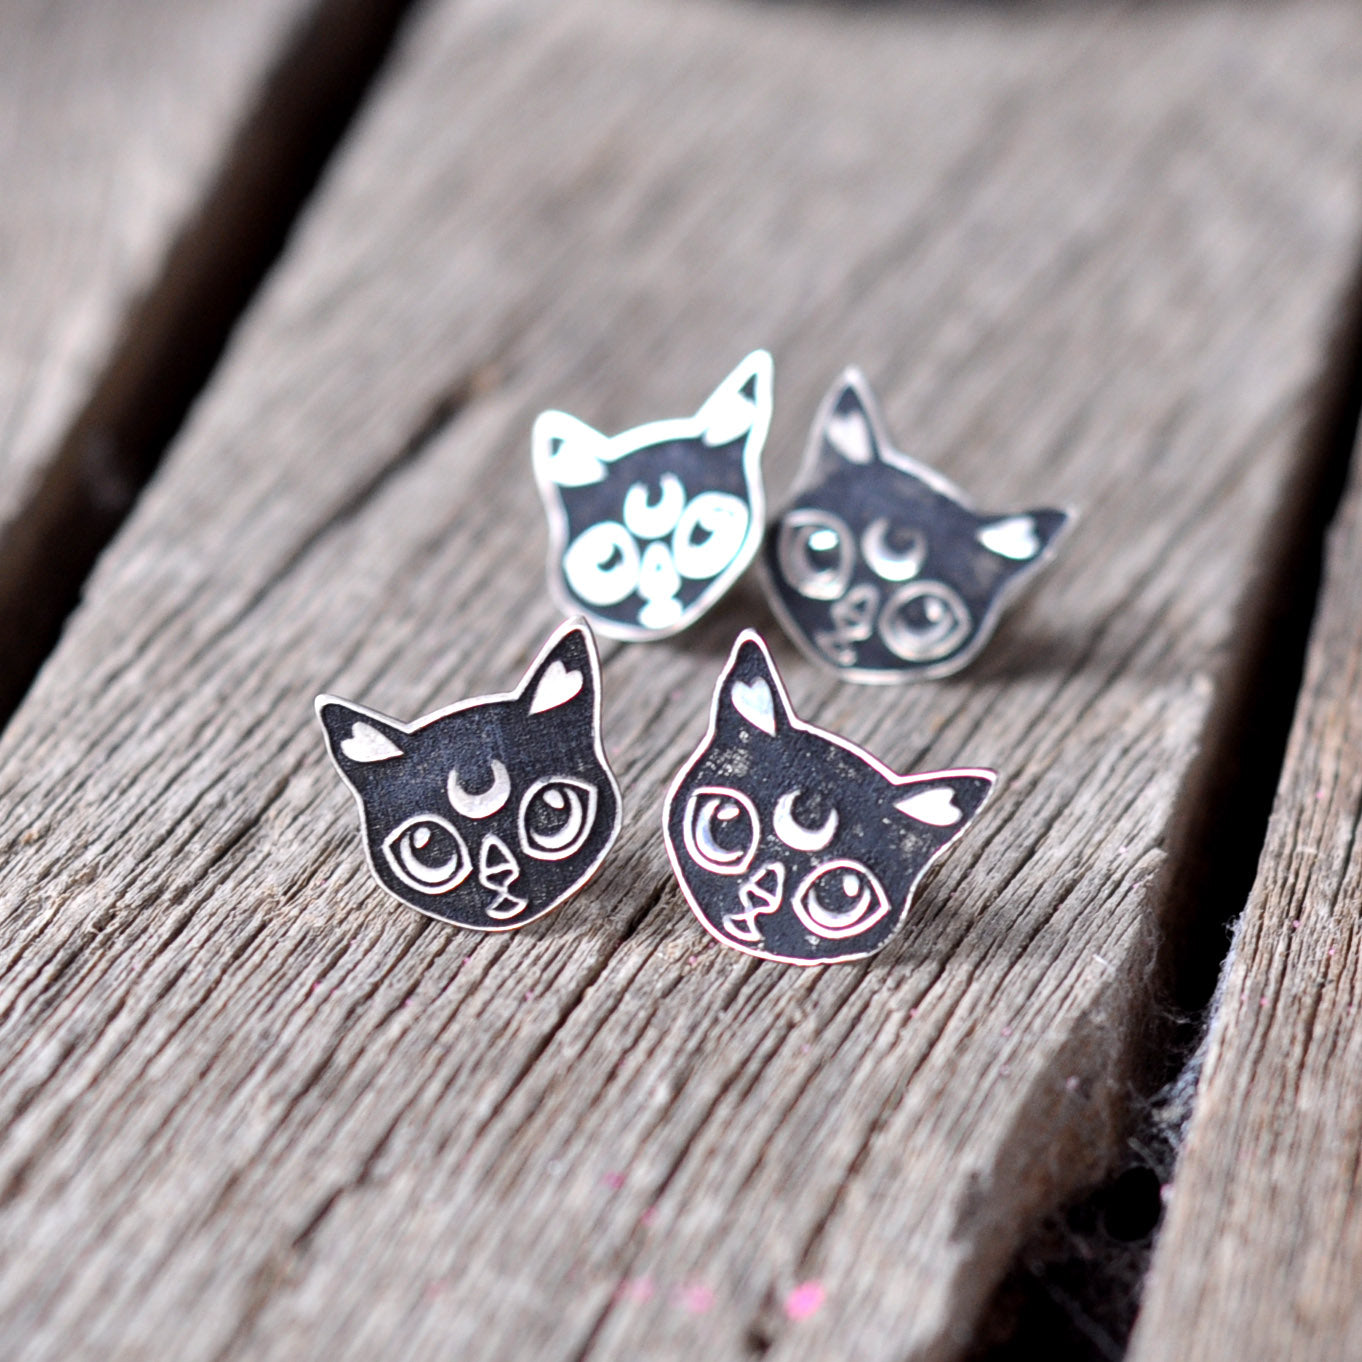 Luna Cat Earrings, Cat Stud Earrings, Sterling Silver Earrings, Lazer Curved Sterling Silver Cat Earrings